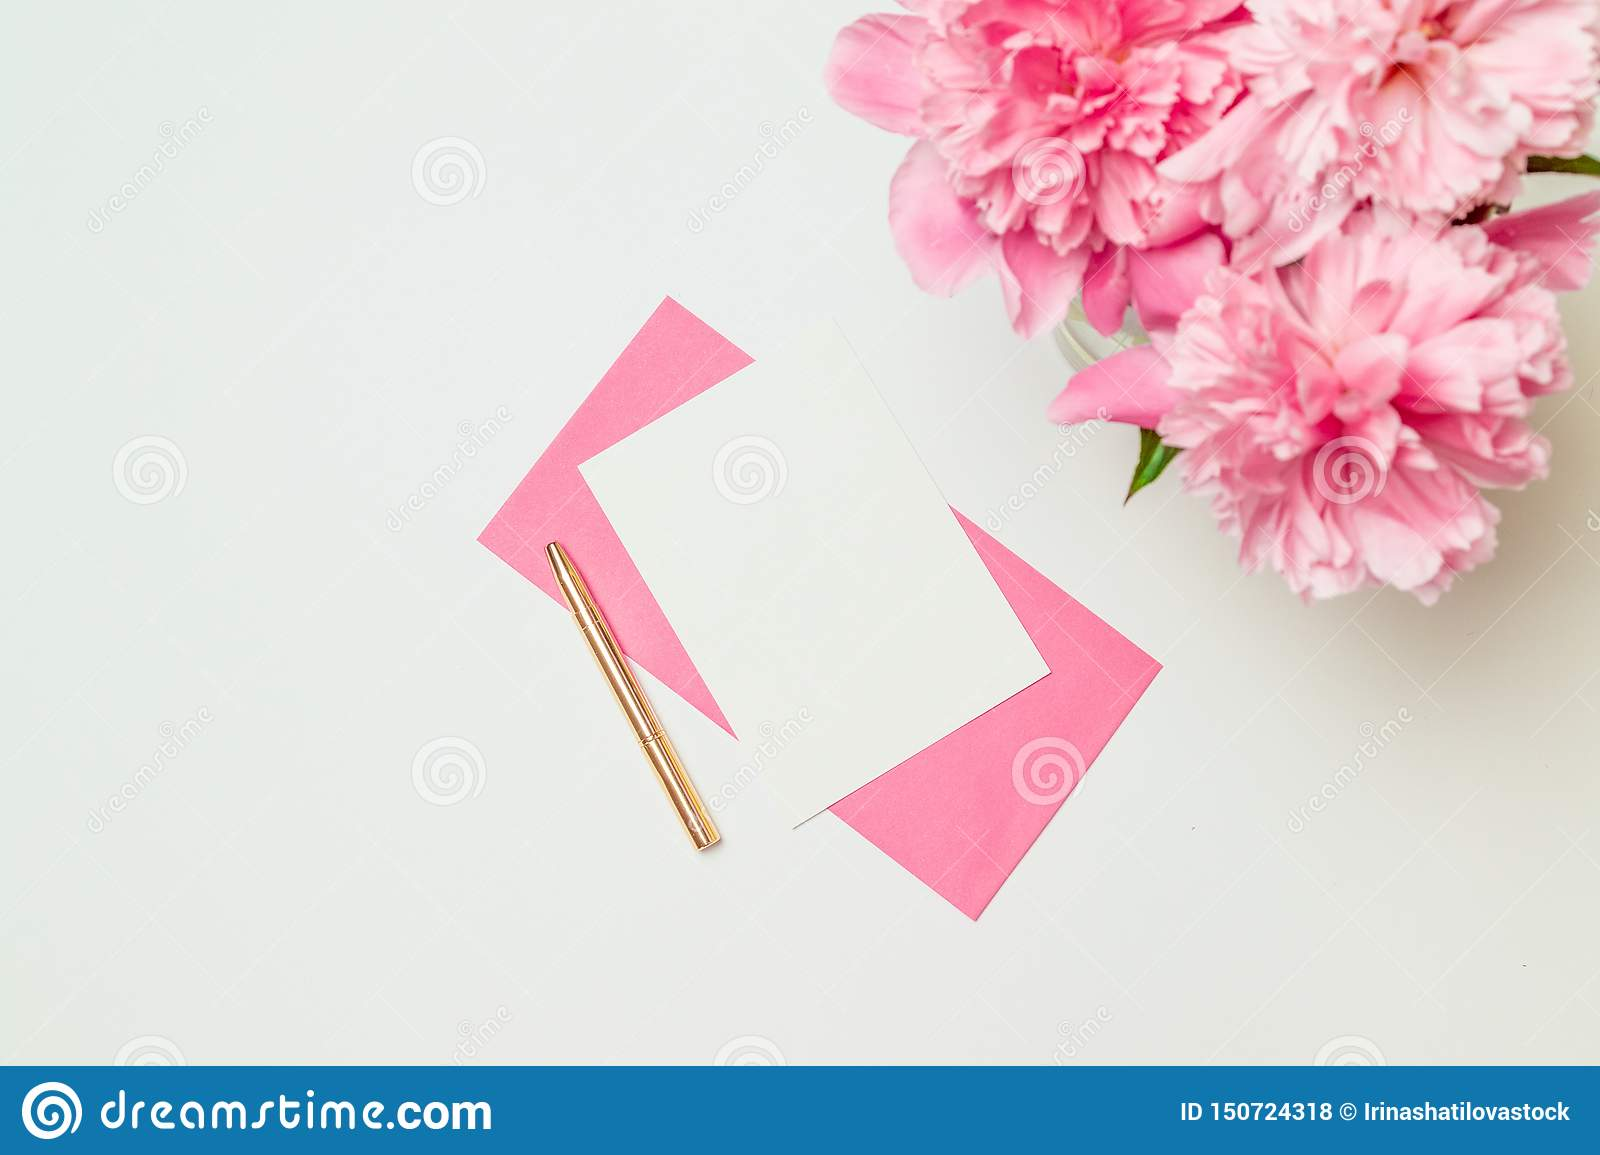 Creative layout made of pink paper envelope with a gold pen, a bouquet of pink peonies isolated on white background